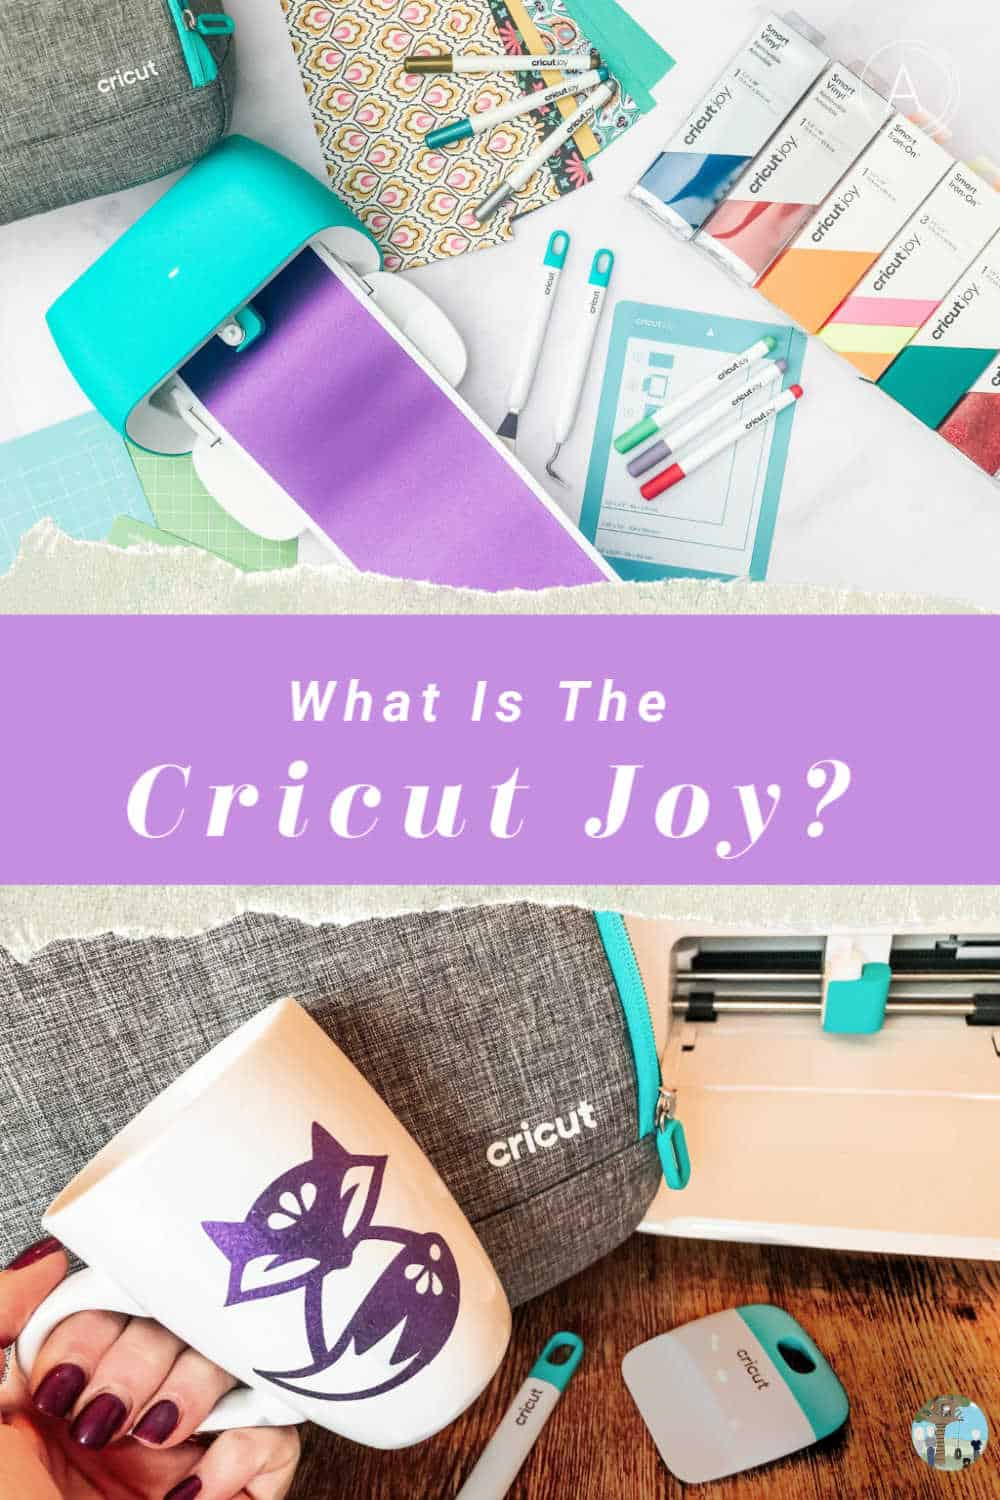 What Is The Cricut Joy, What can the Cricut Joy do, what materials does it cut and how easy is it to use?